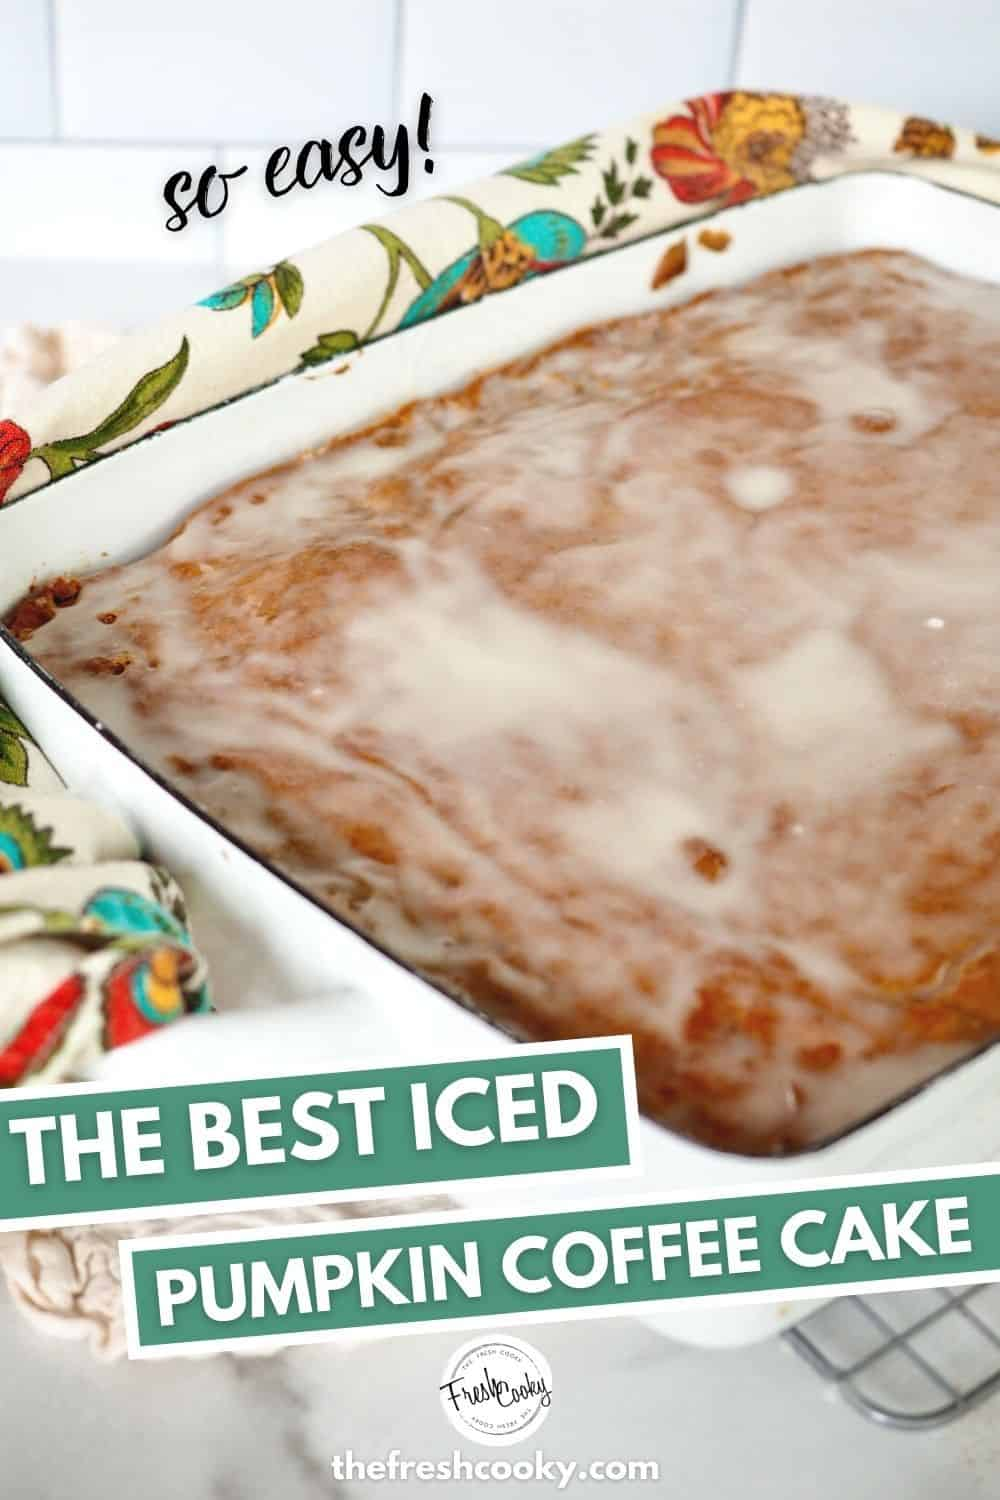 Crazy good Pumpkin Spiced Coffee Cake is an easy almost from scratch recipe from The Fresh Cooky. Whip up this quick cake for your next fall breakfast, perfect for Thanksgiving and Christmas too! Video and High Altitude instructions on the blog. #thefreshcooky #pumpkincake #spicecake via @thefreshcooky